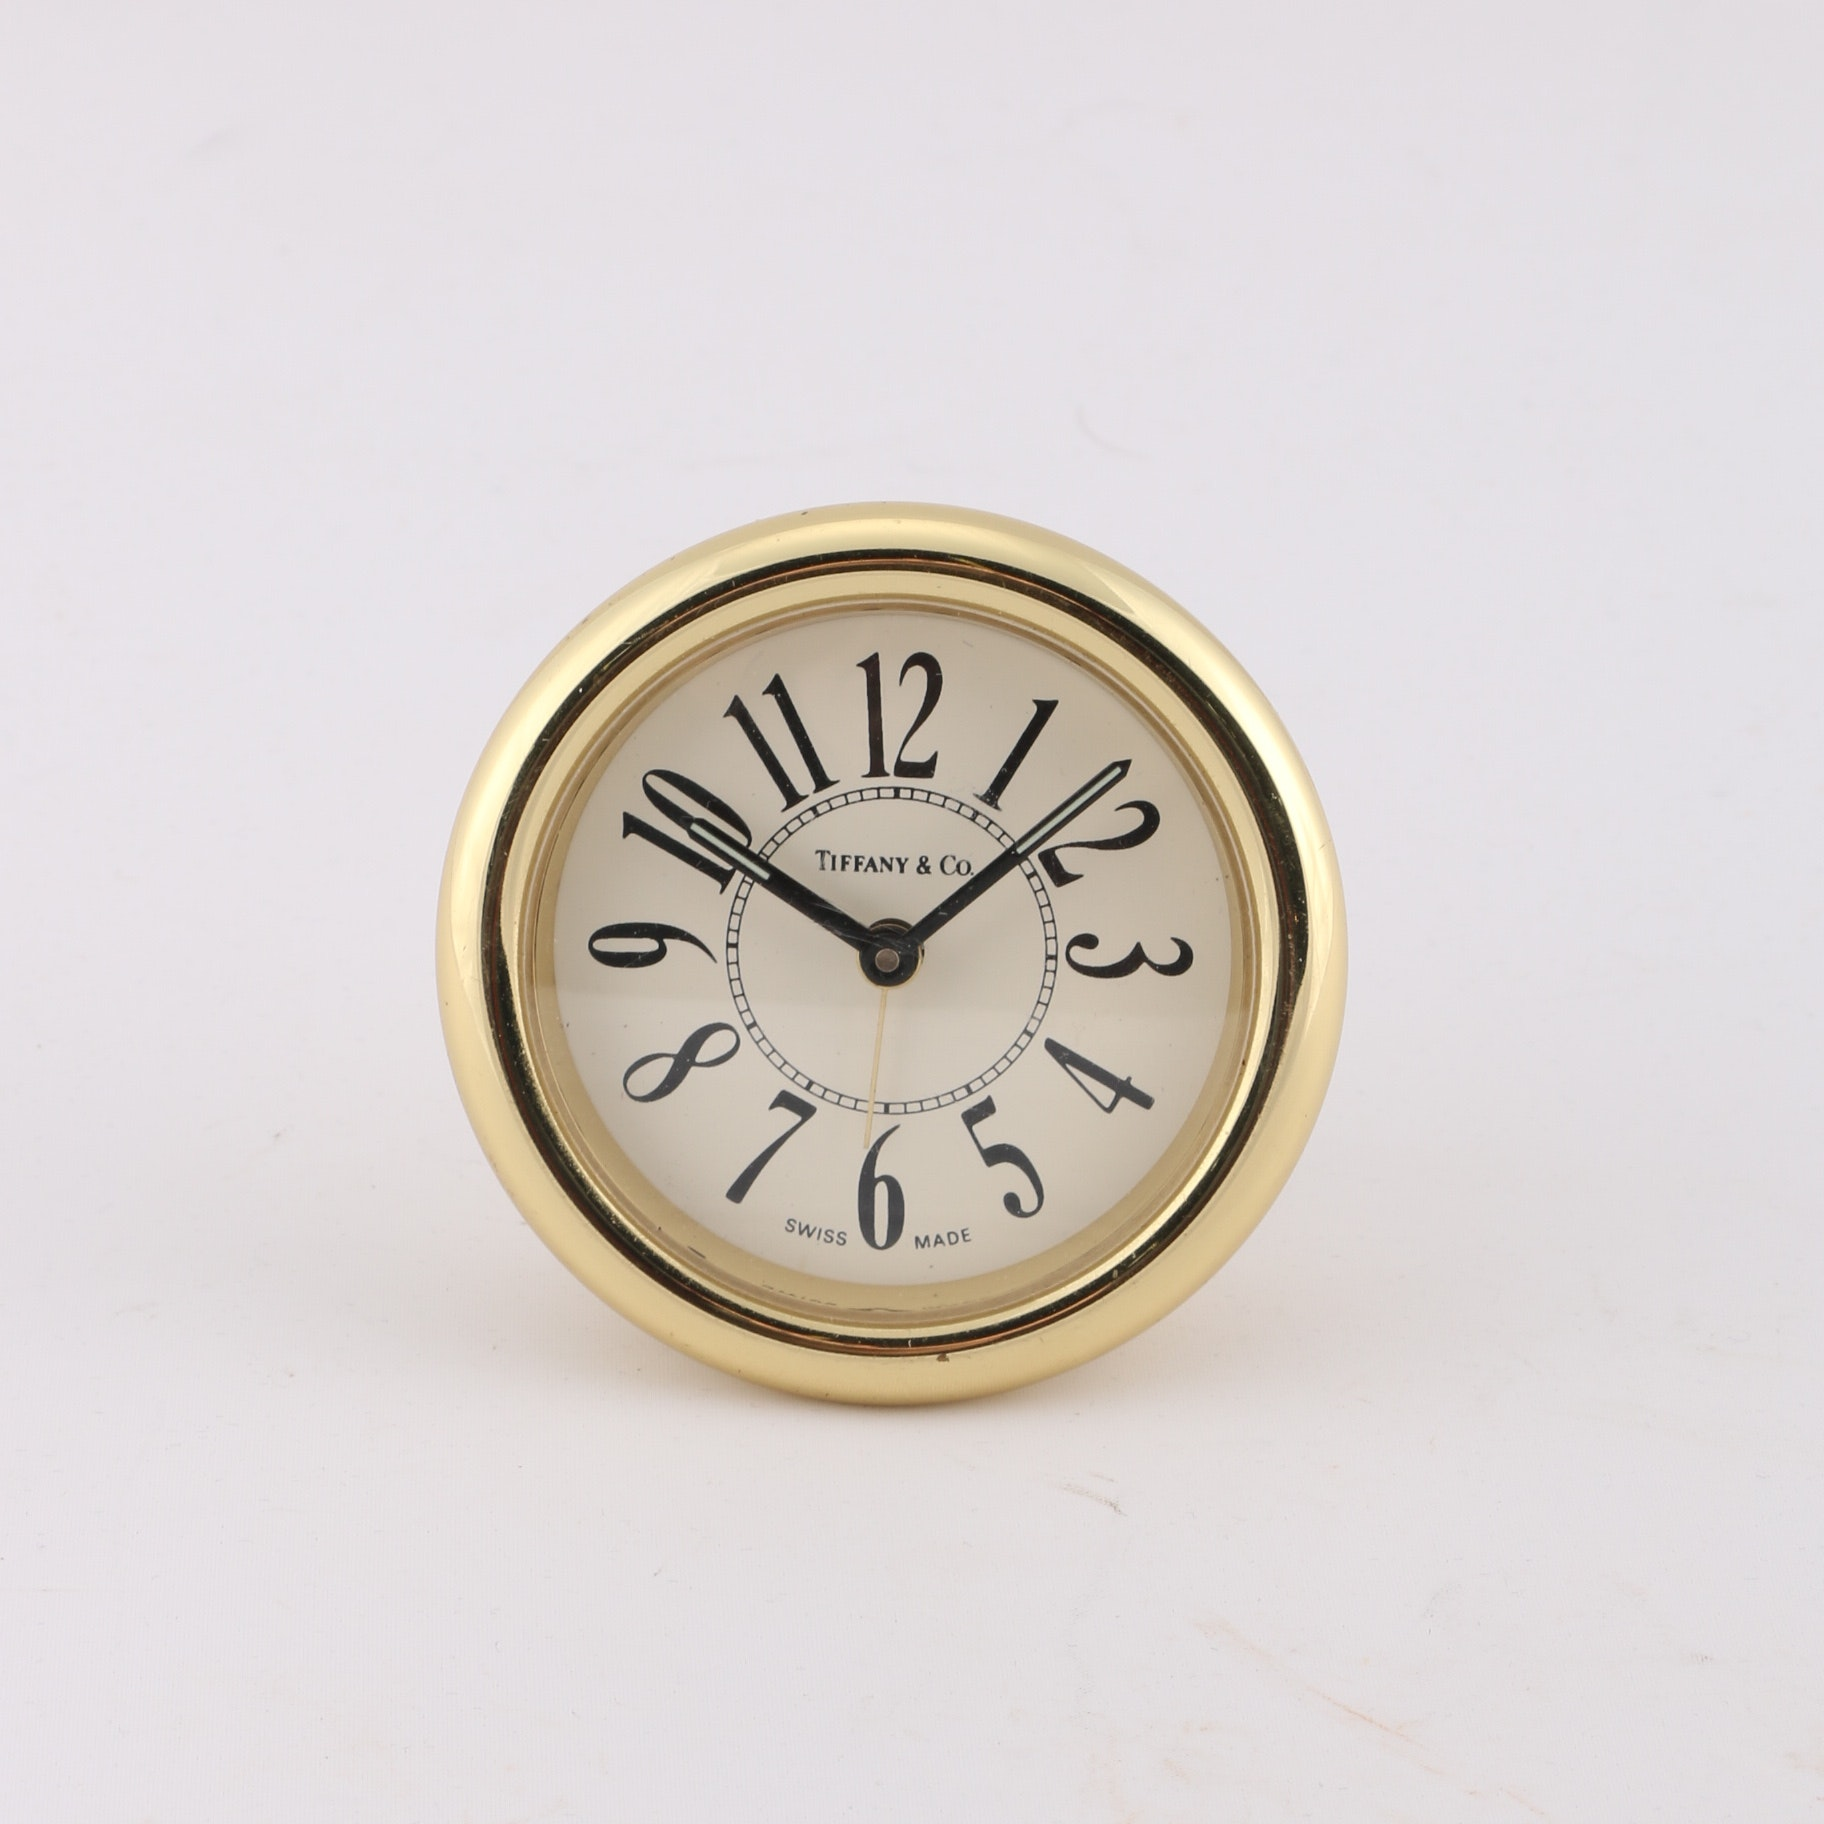 Circa 1980s Tiffany Amp Co Brass Alarm Clock Ebth